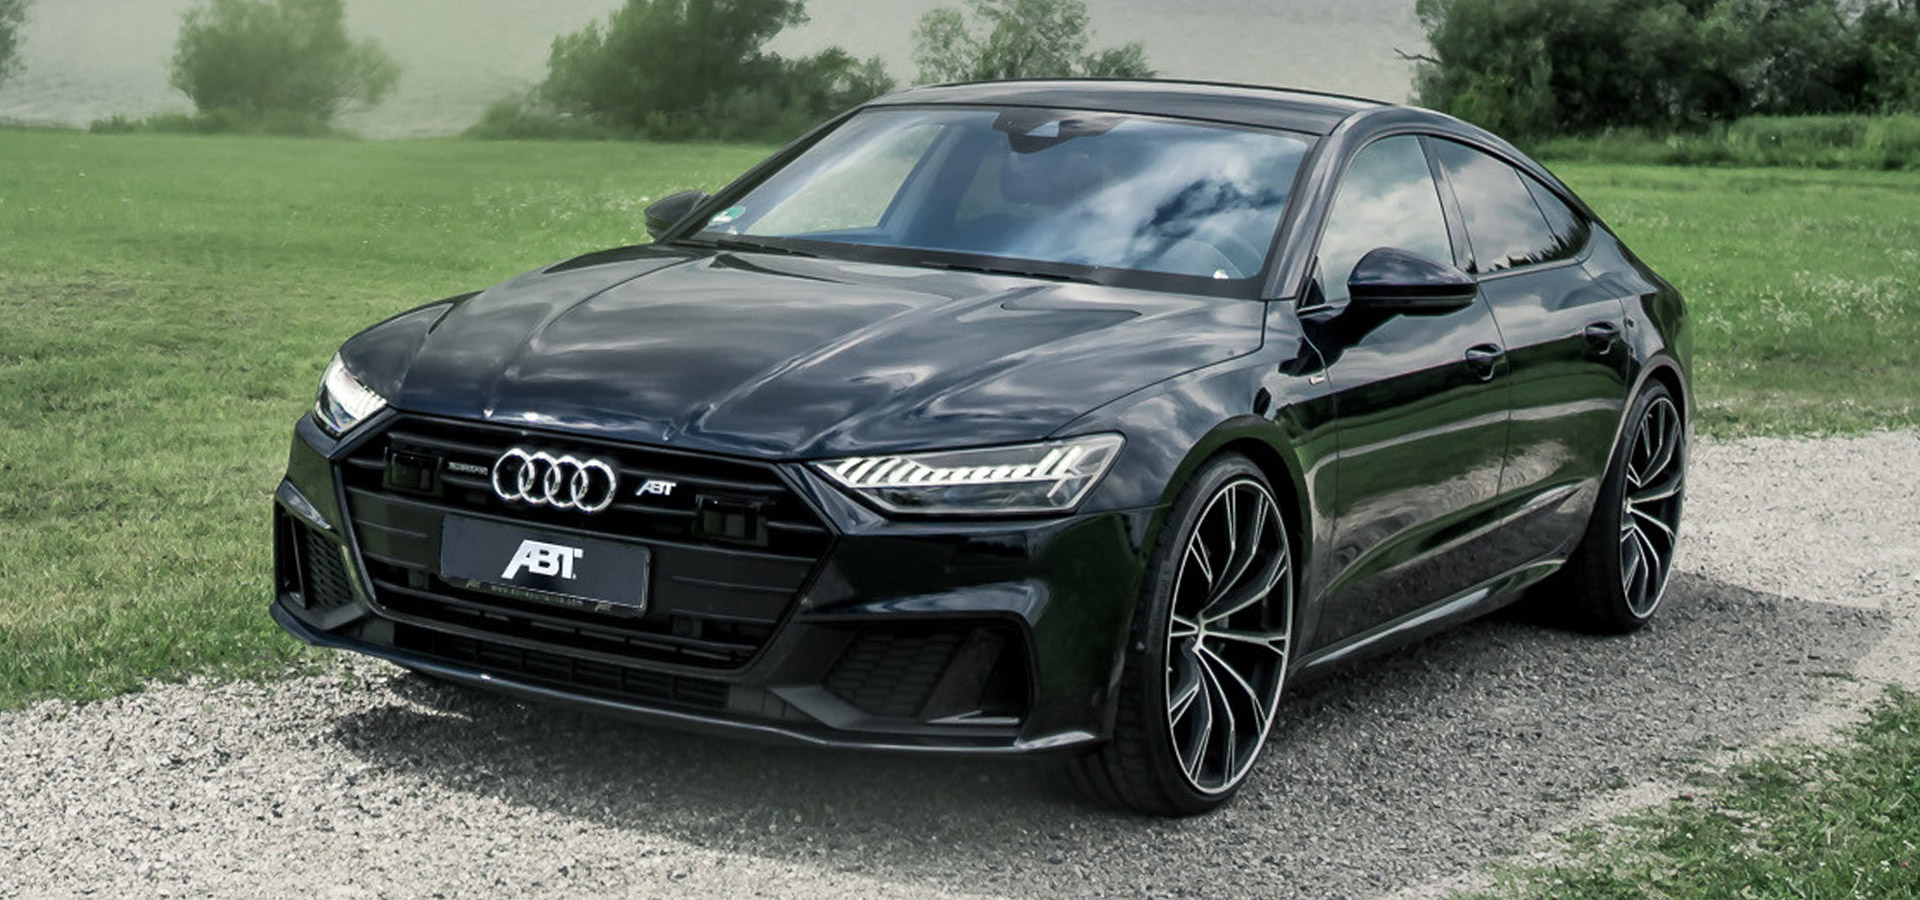 Audi A7 (from 2019) and S7 (from 2020)